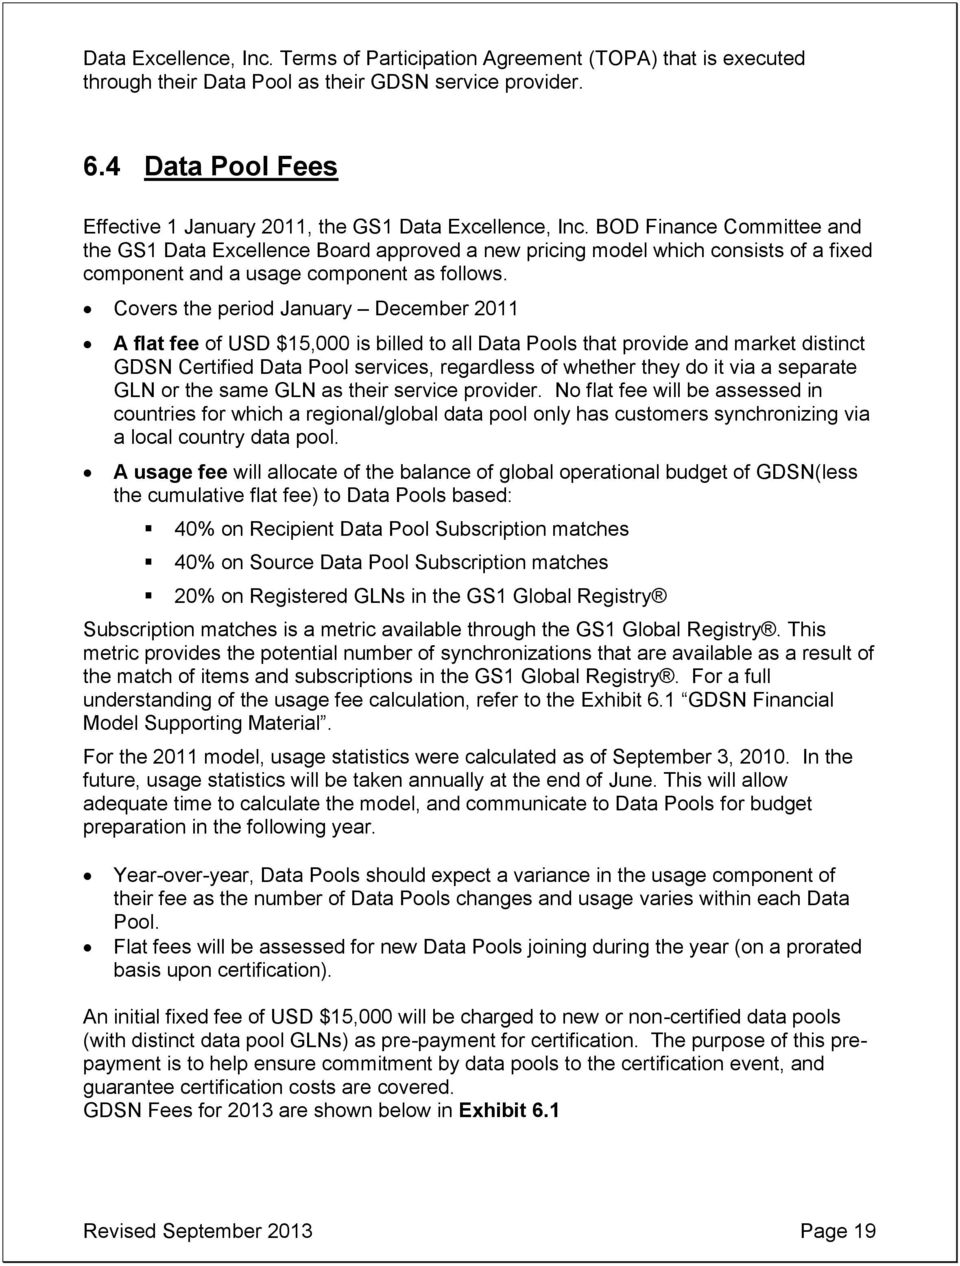 BOD Finance Committee and the GS1 Data Excellence Board approved a new pricing model which consists of a fixed component and a usage component as follows.